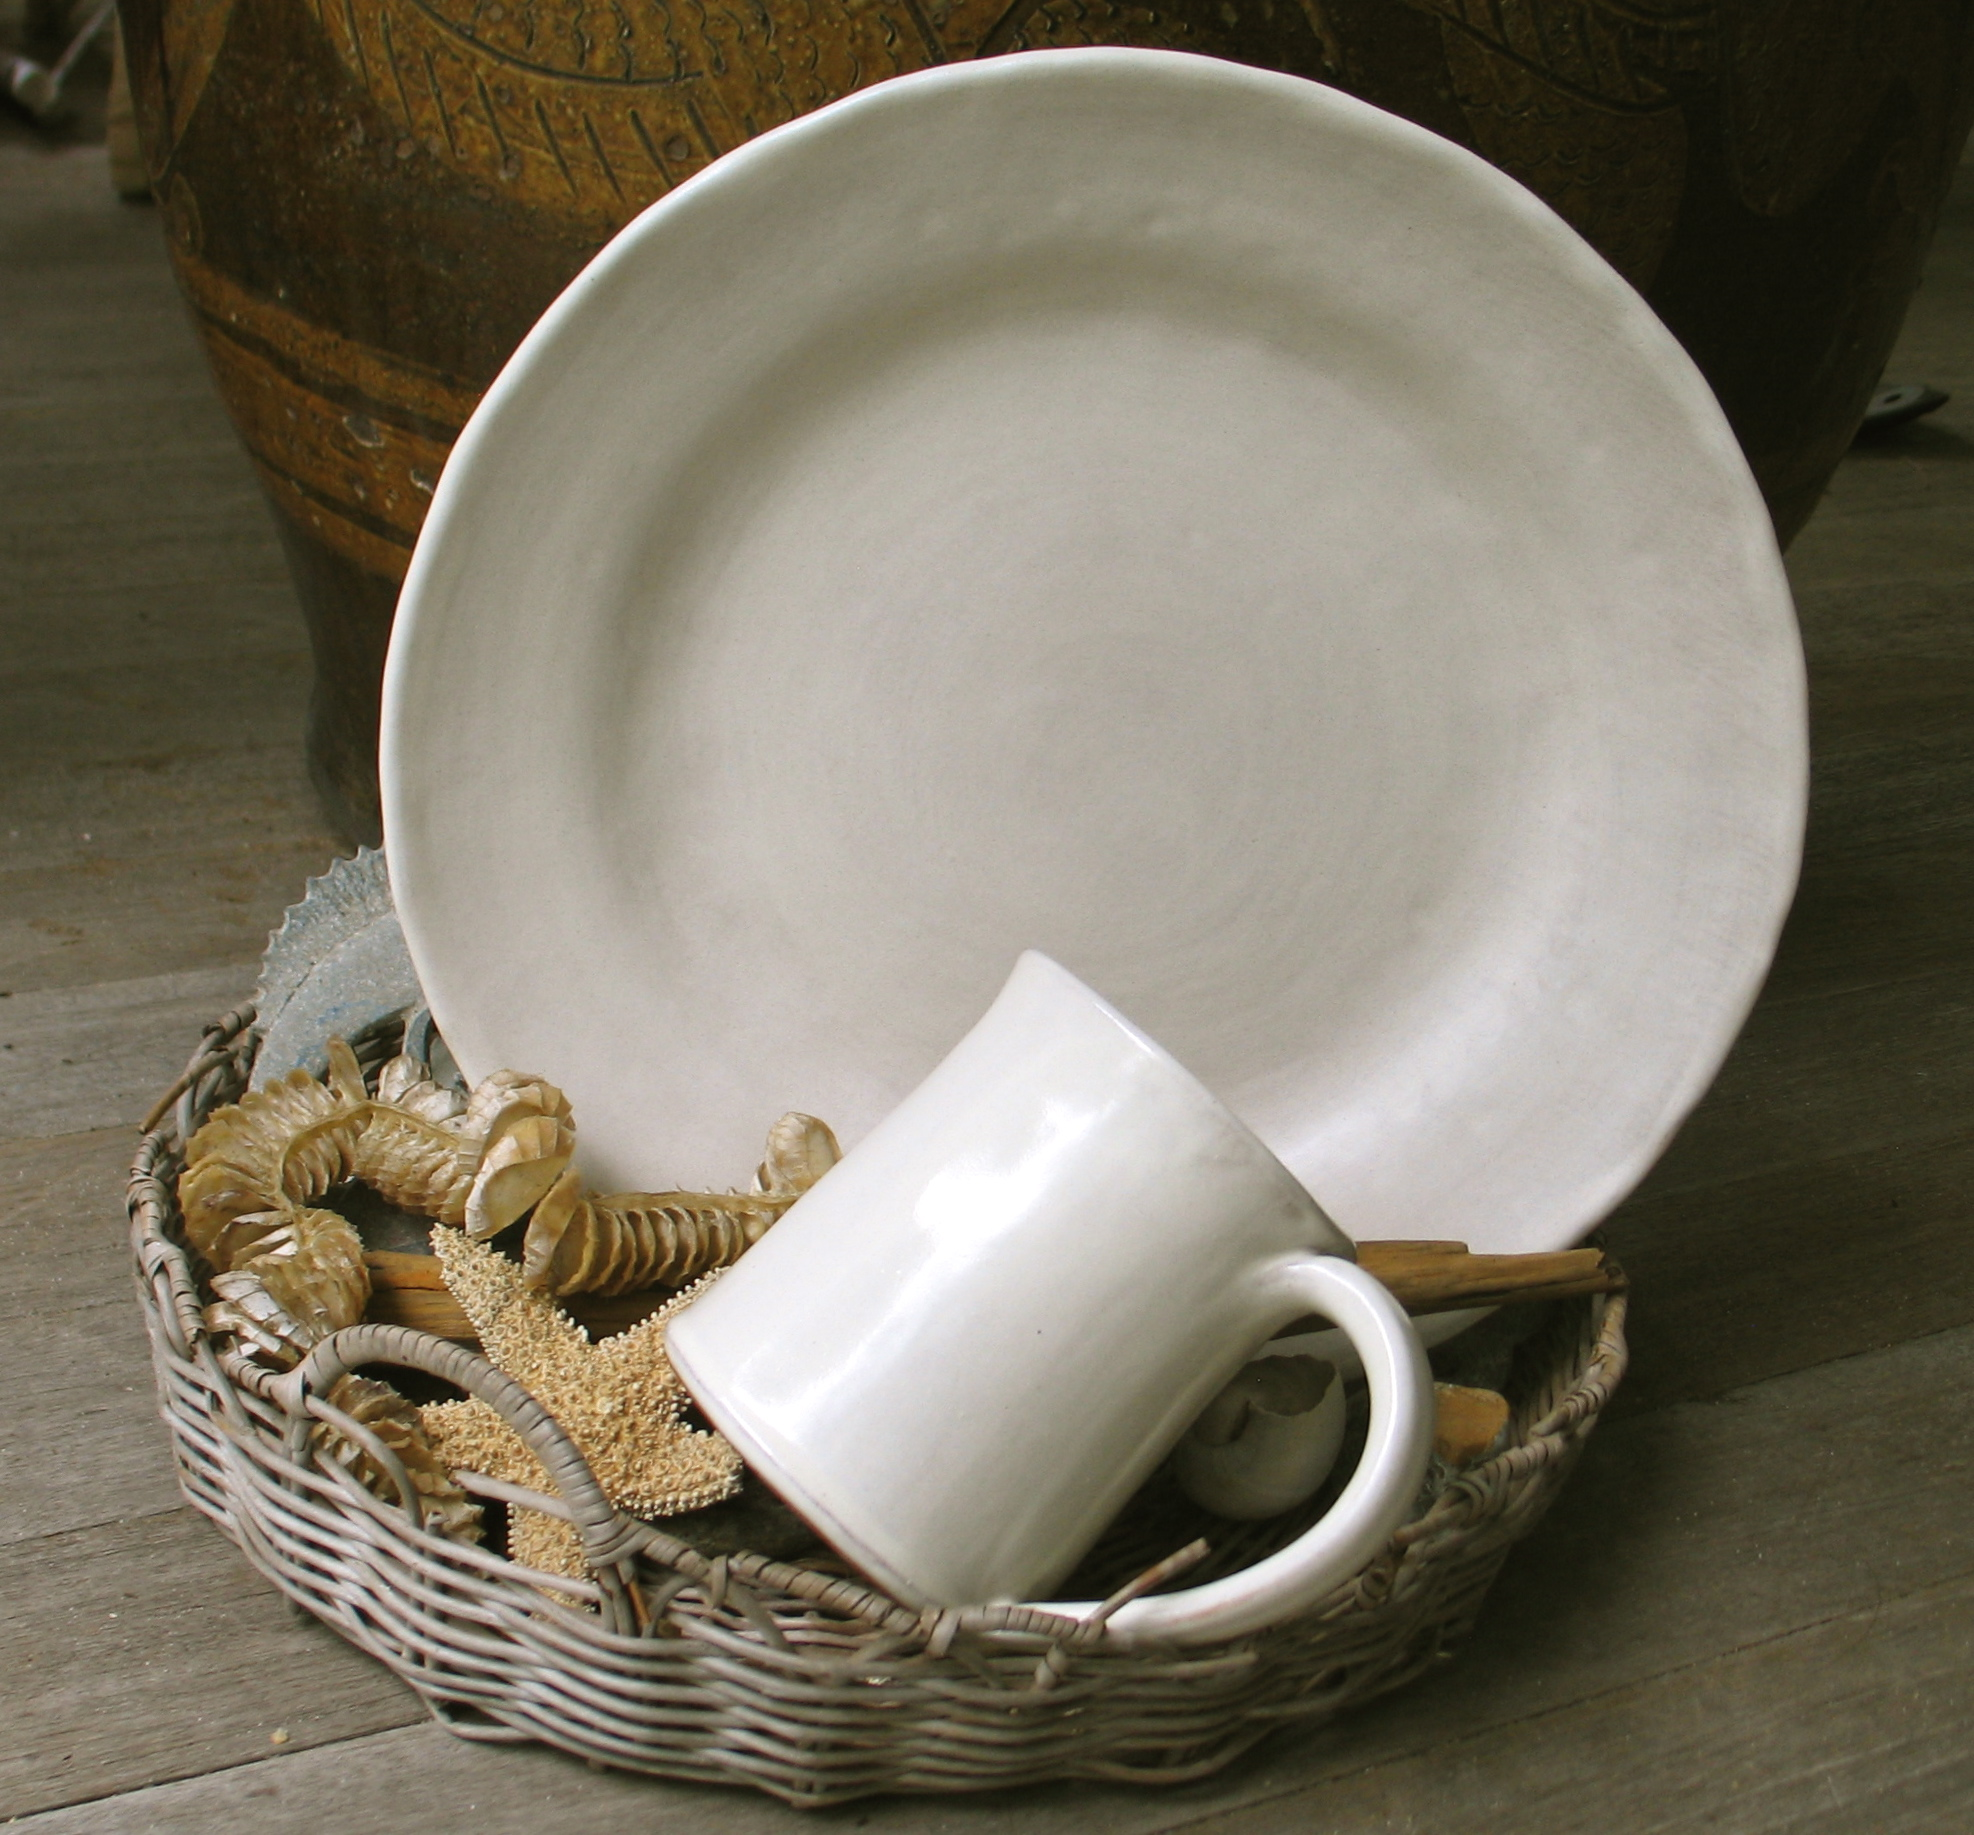 New dinnerware for 2015. Food looks beautiful on these. & Dinnerware | Susan Ross Pottery